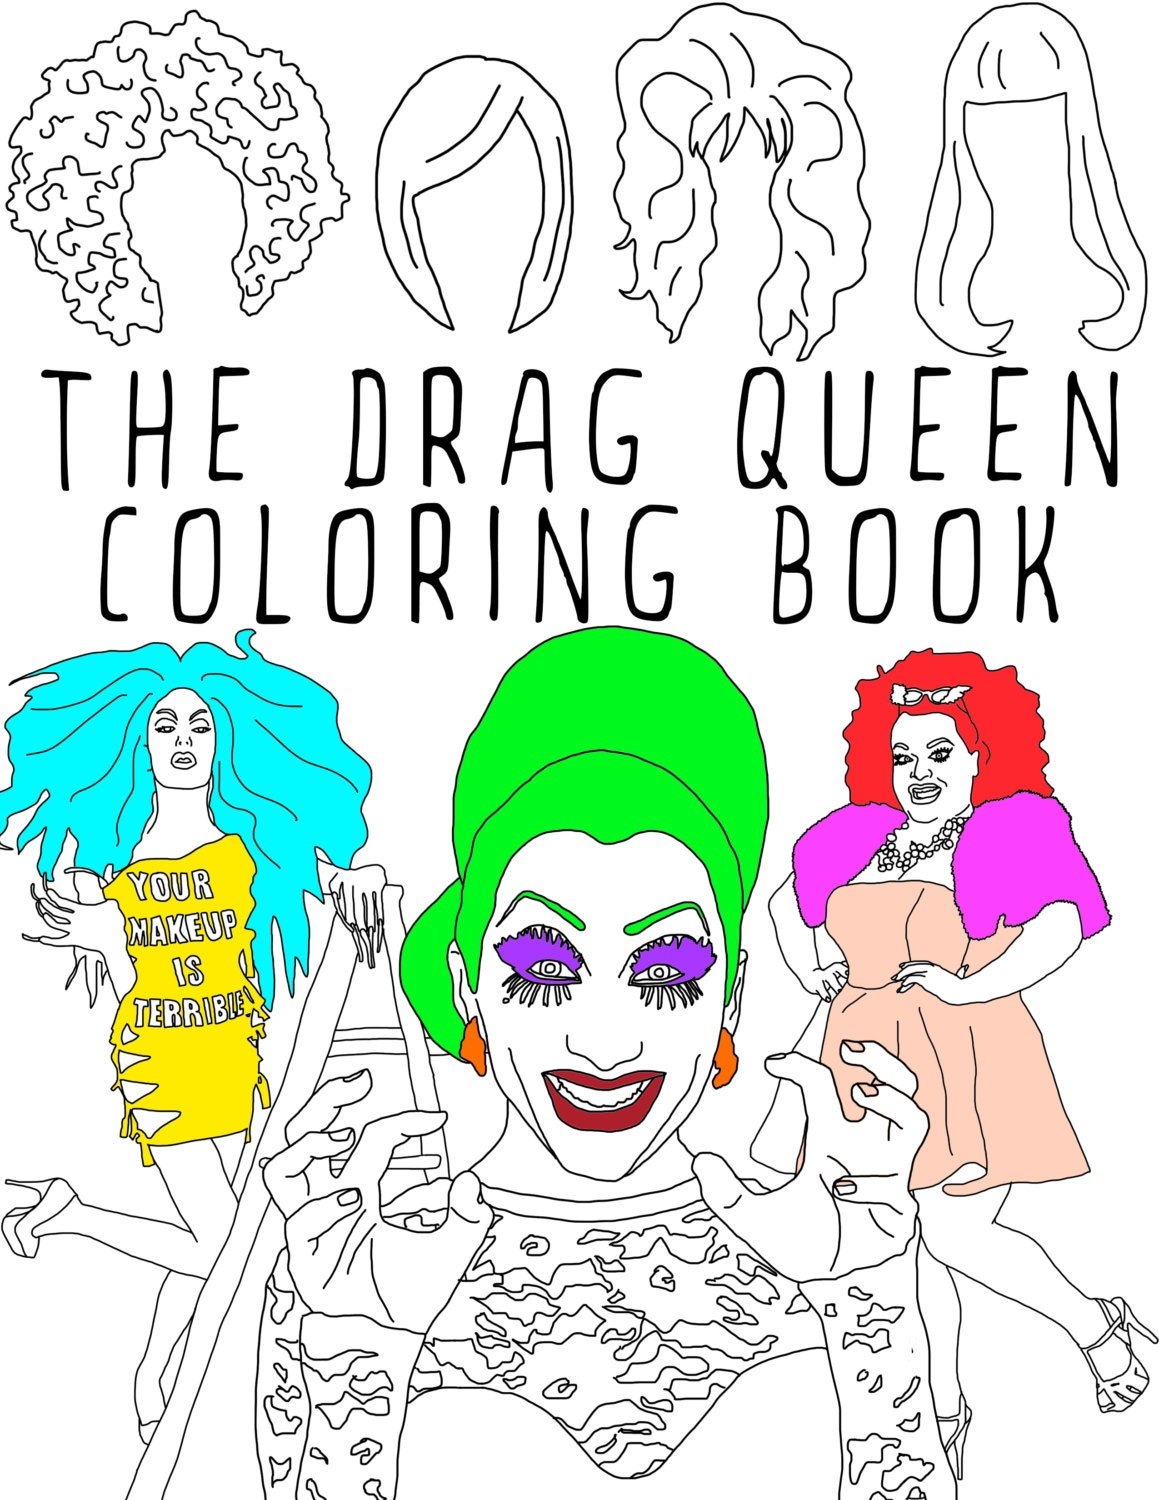 the drag queen coloring book adult coloring book printable coloring pages instant download - Printable Coloring Book